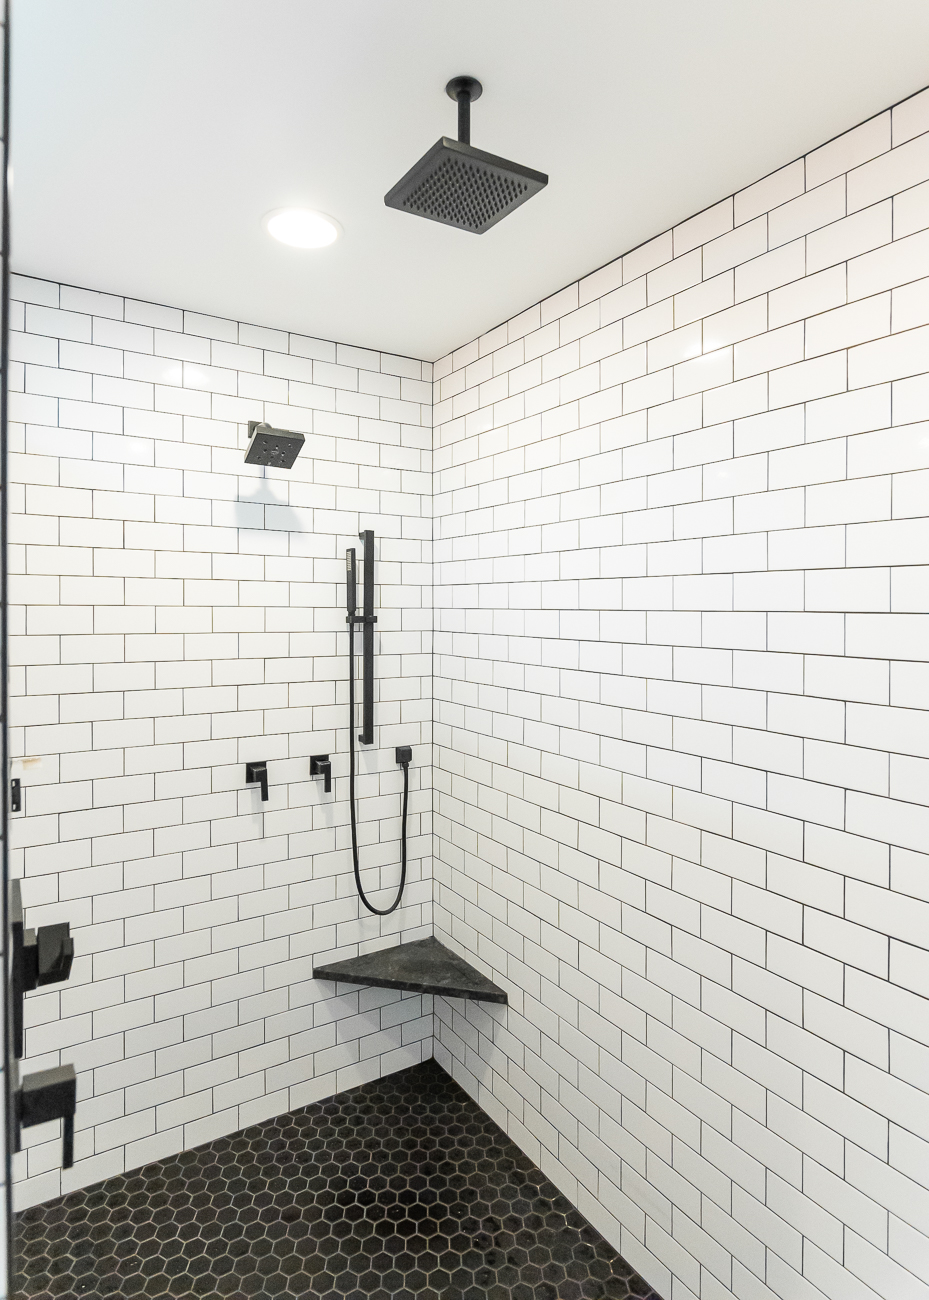 Shower stall / Image: Phil Armstrong, Cincinnati Refined // Published: 6.5.20